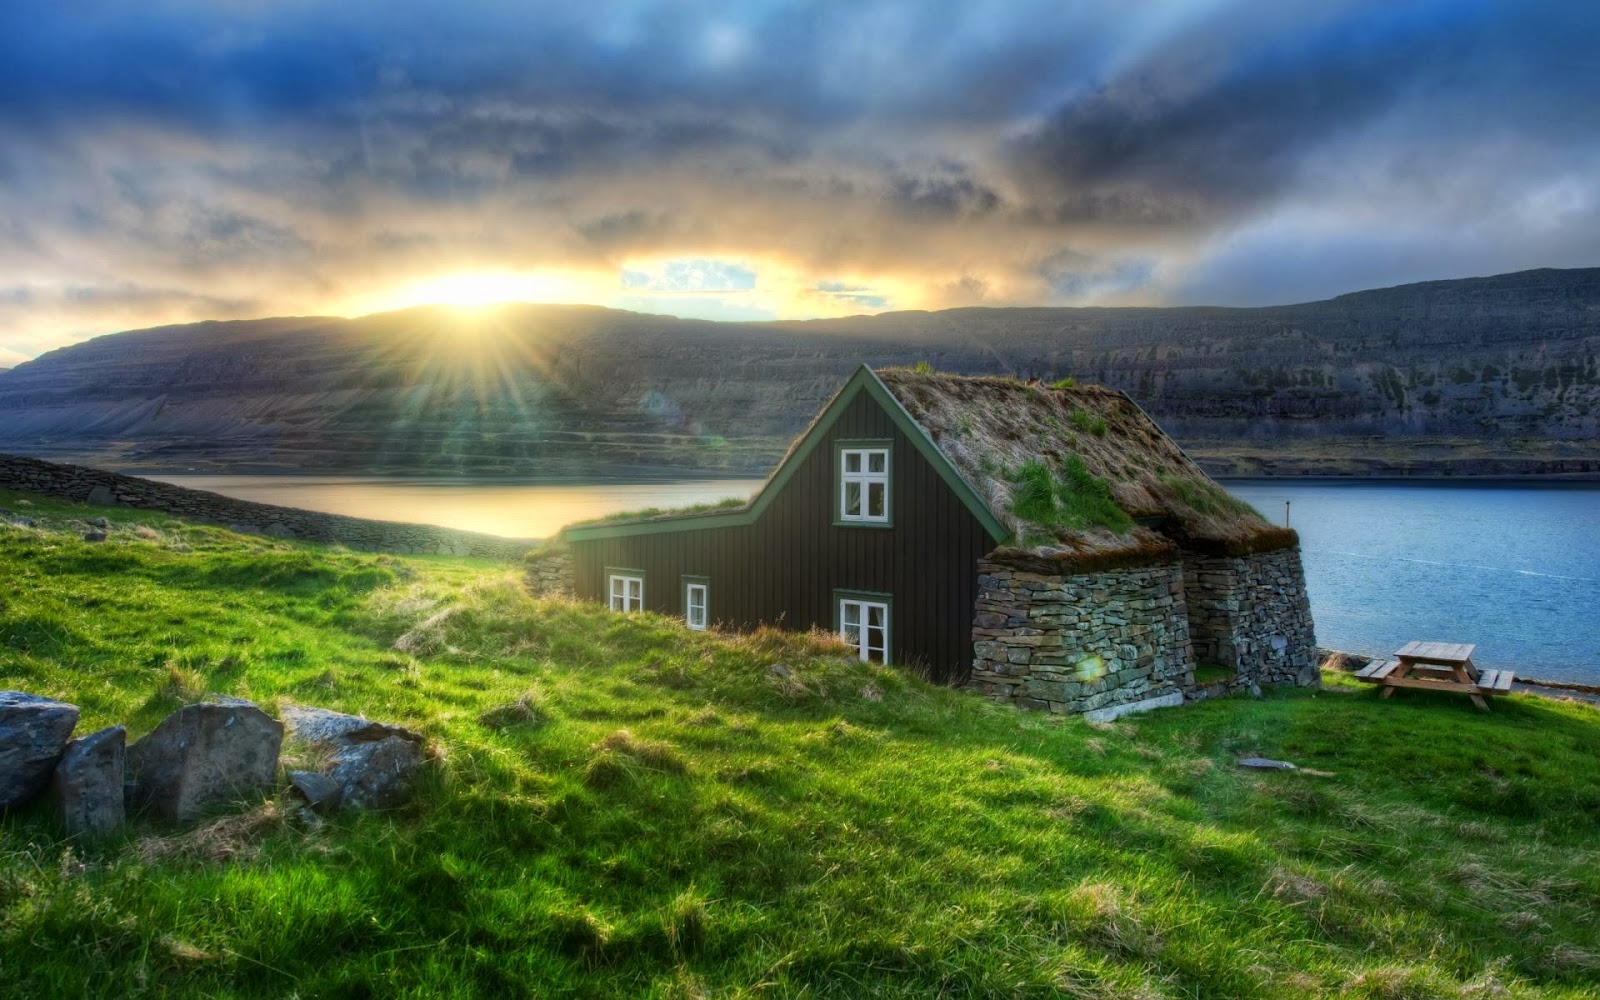 iceland hd wallpapers - photo #35